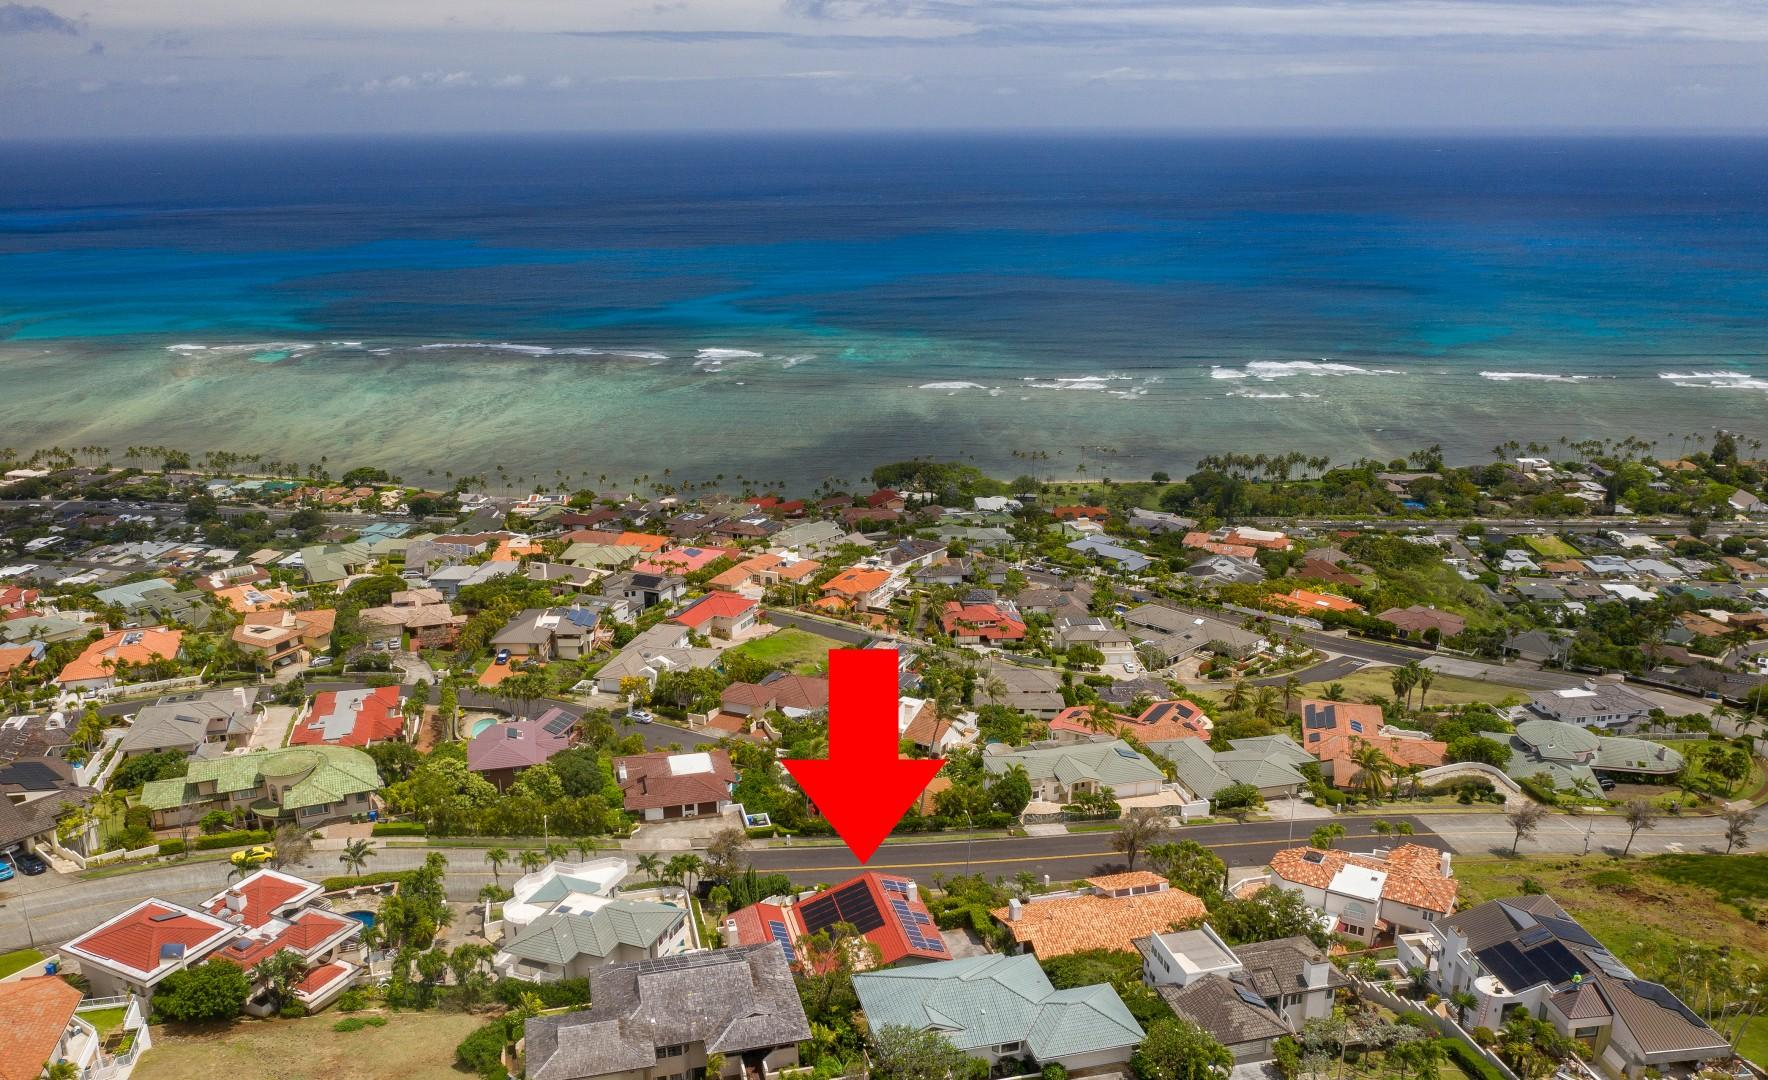 Located on the hillside of Hawaii Loa Ridge with beautiful views of the Pacific Ocean.